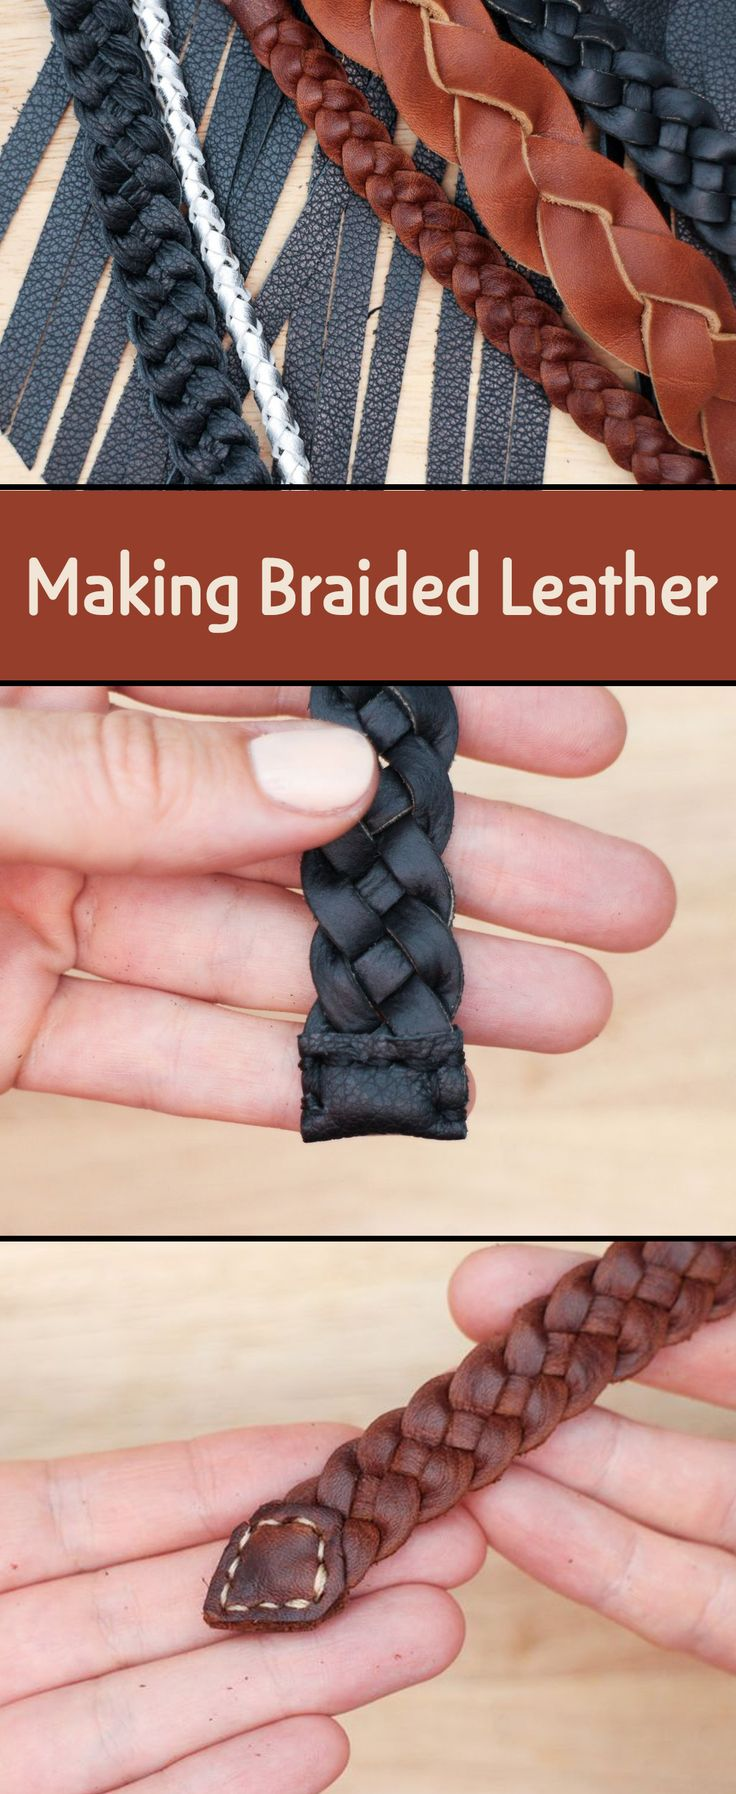 Leather is a great material for braiding and weaving. It is soft and pliable and can be cut easily into different numbers of strands.